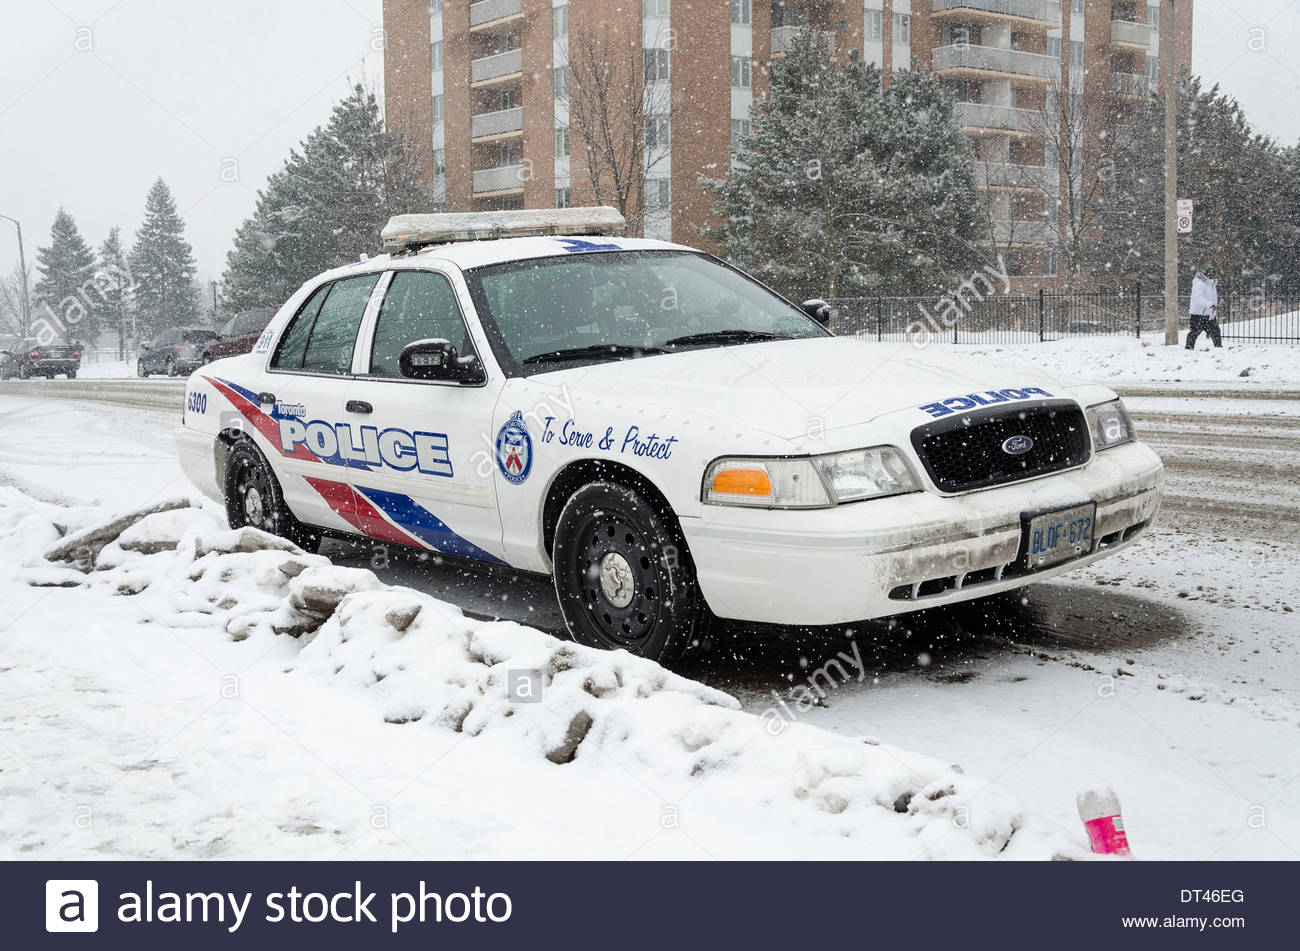 Toronto police car parked in the street during the harsh Canadian winter Stock Photo